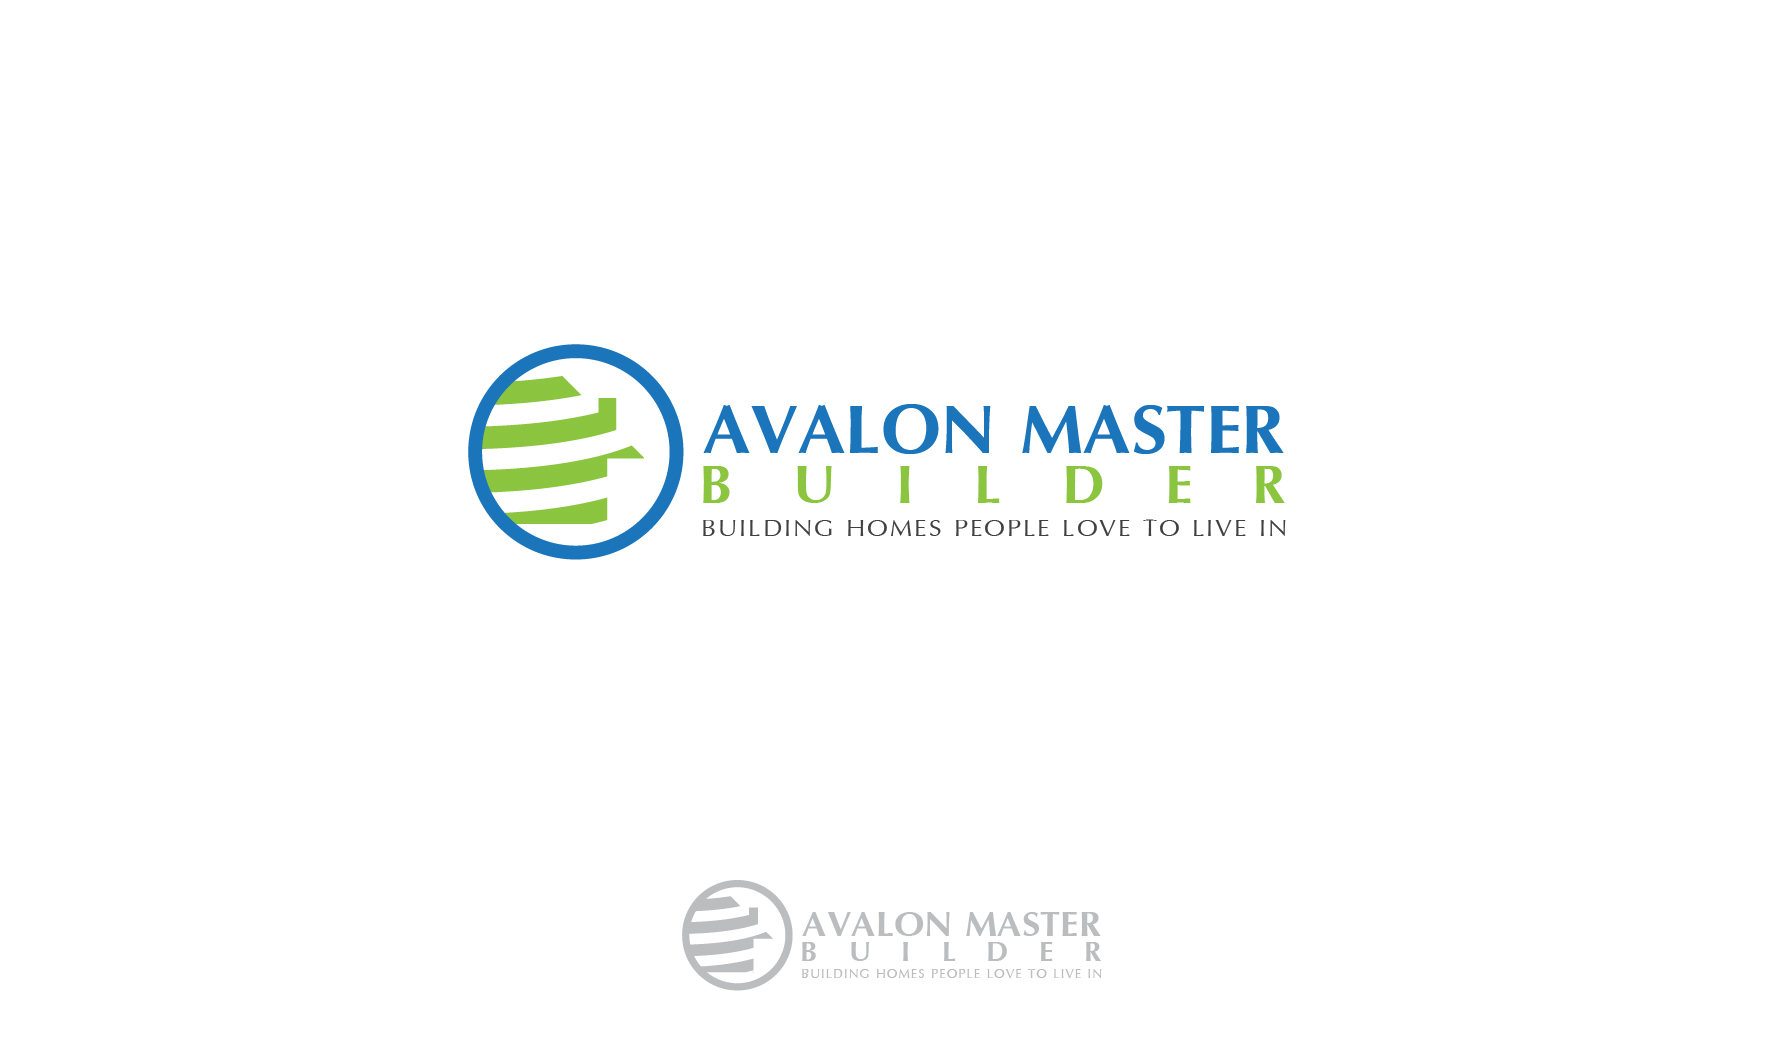 Logo Design by 3draw - Entry No. 48 in the Logo Design Contest Avalon Master Builder Logo Design.